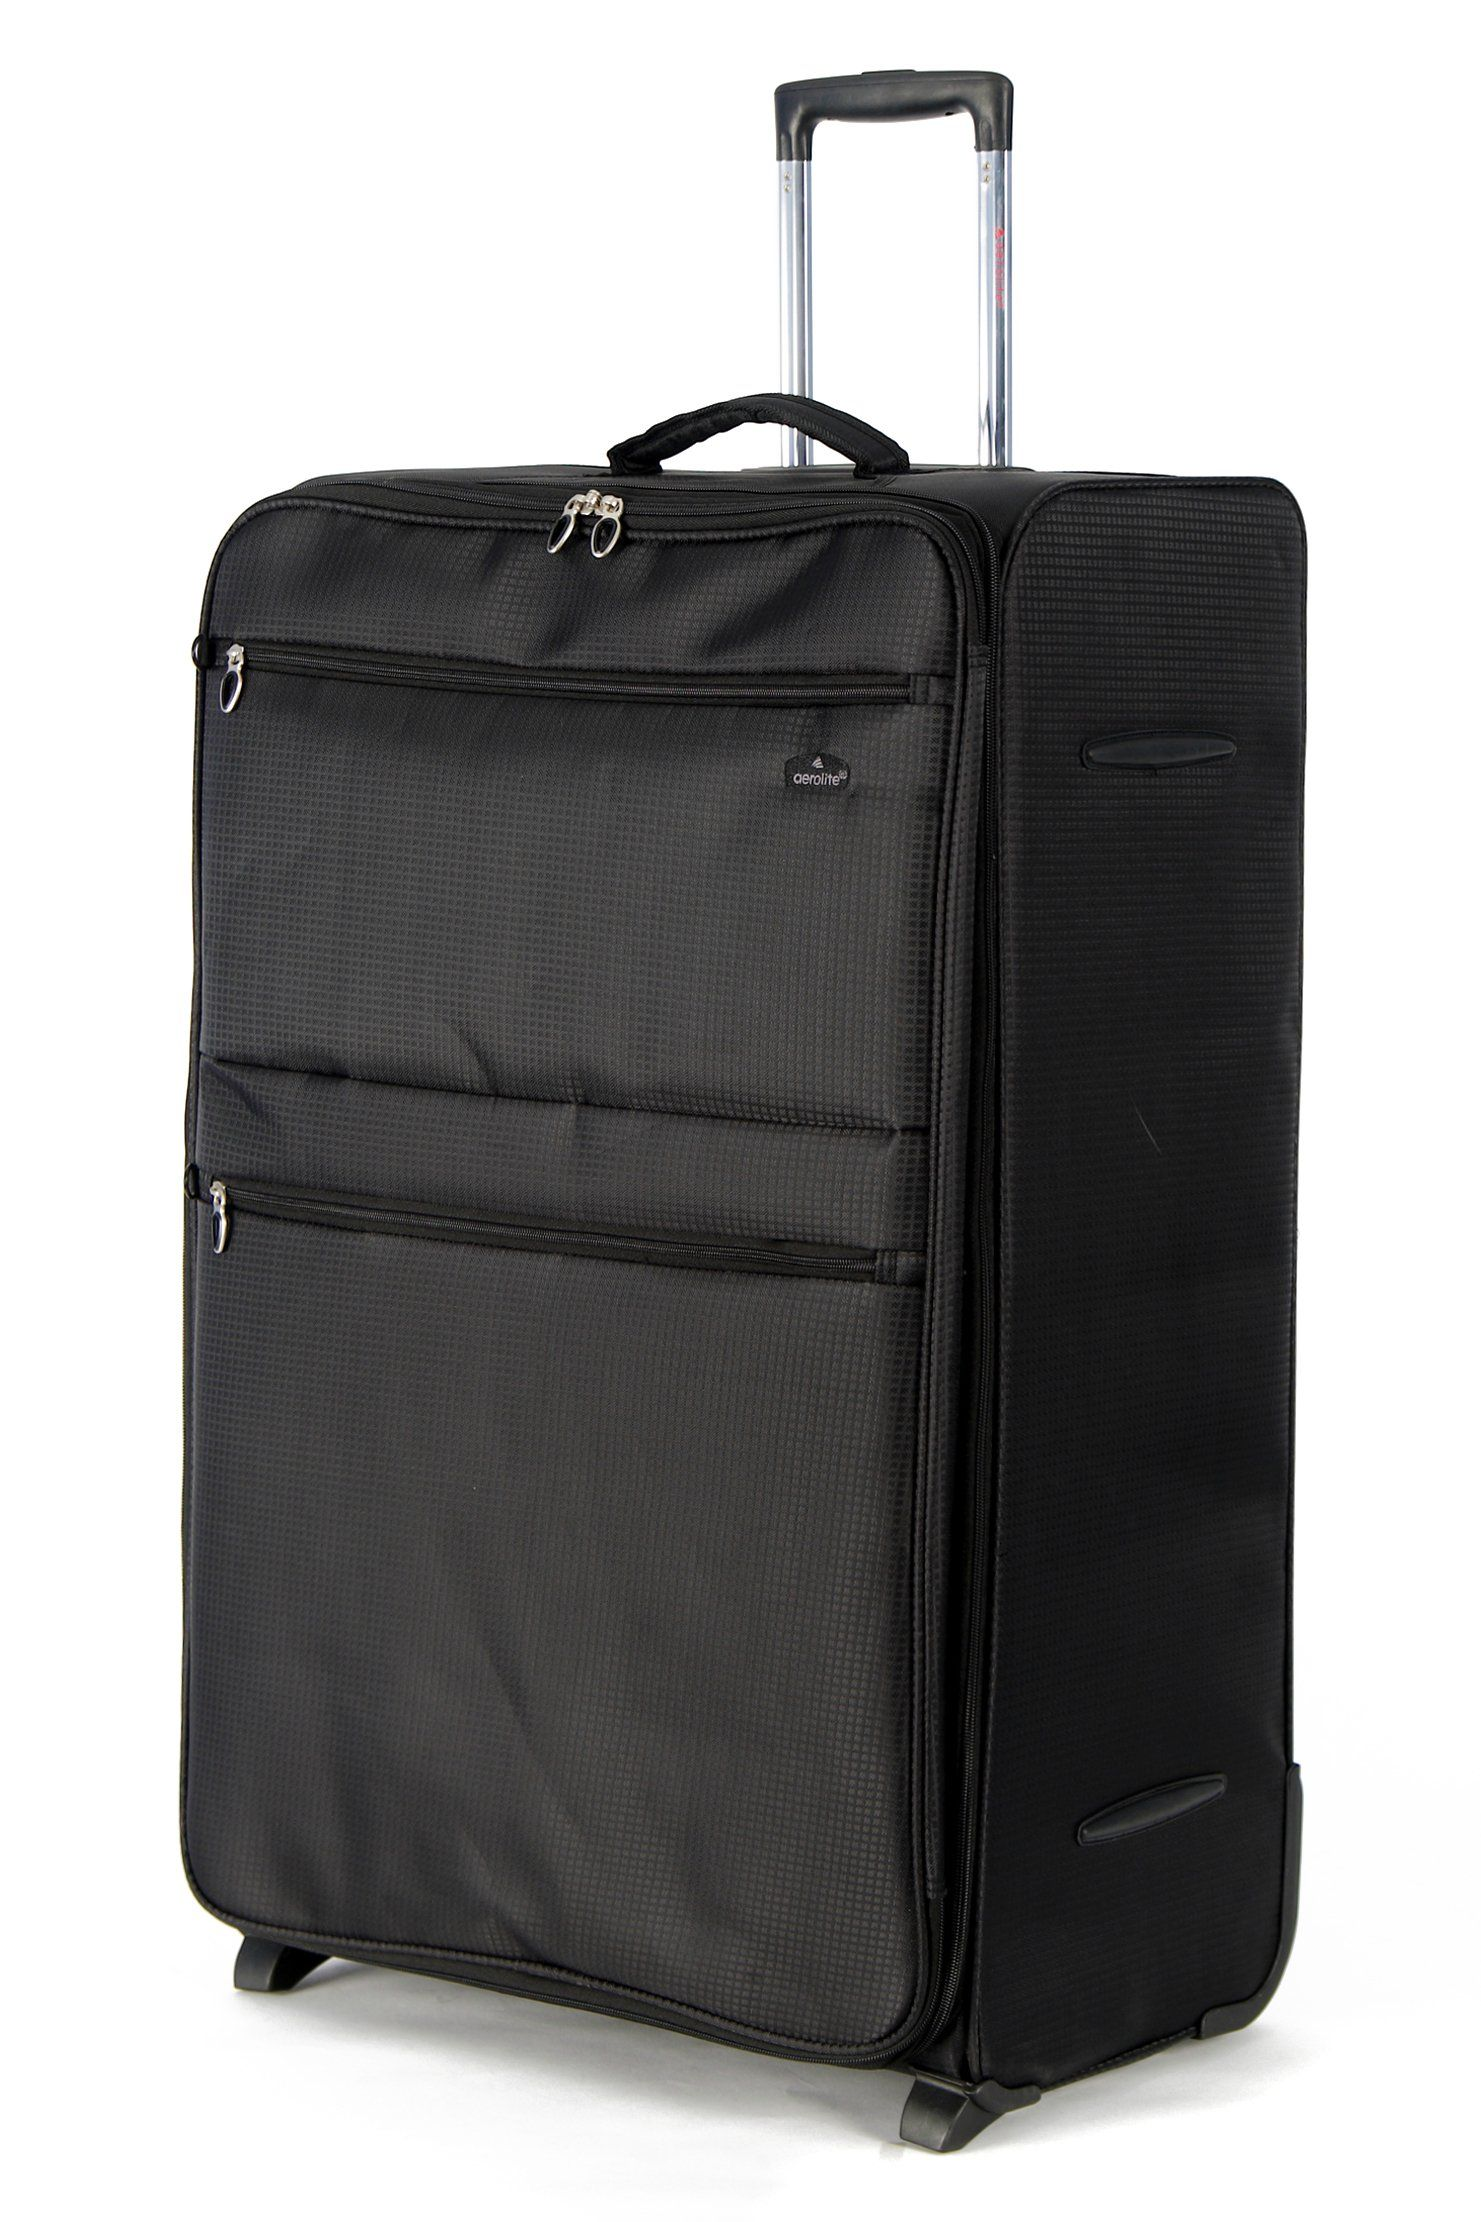 """bec11f664 Aerolite Super-Lightweight Suitcase Luggage, World Lightest Holiday Carry  on Baggage, Large and Small Cabin Travel Bags in 18"""" 21"""" 26"""" 29"""" 32"""" Sets  336 ..."""